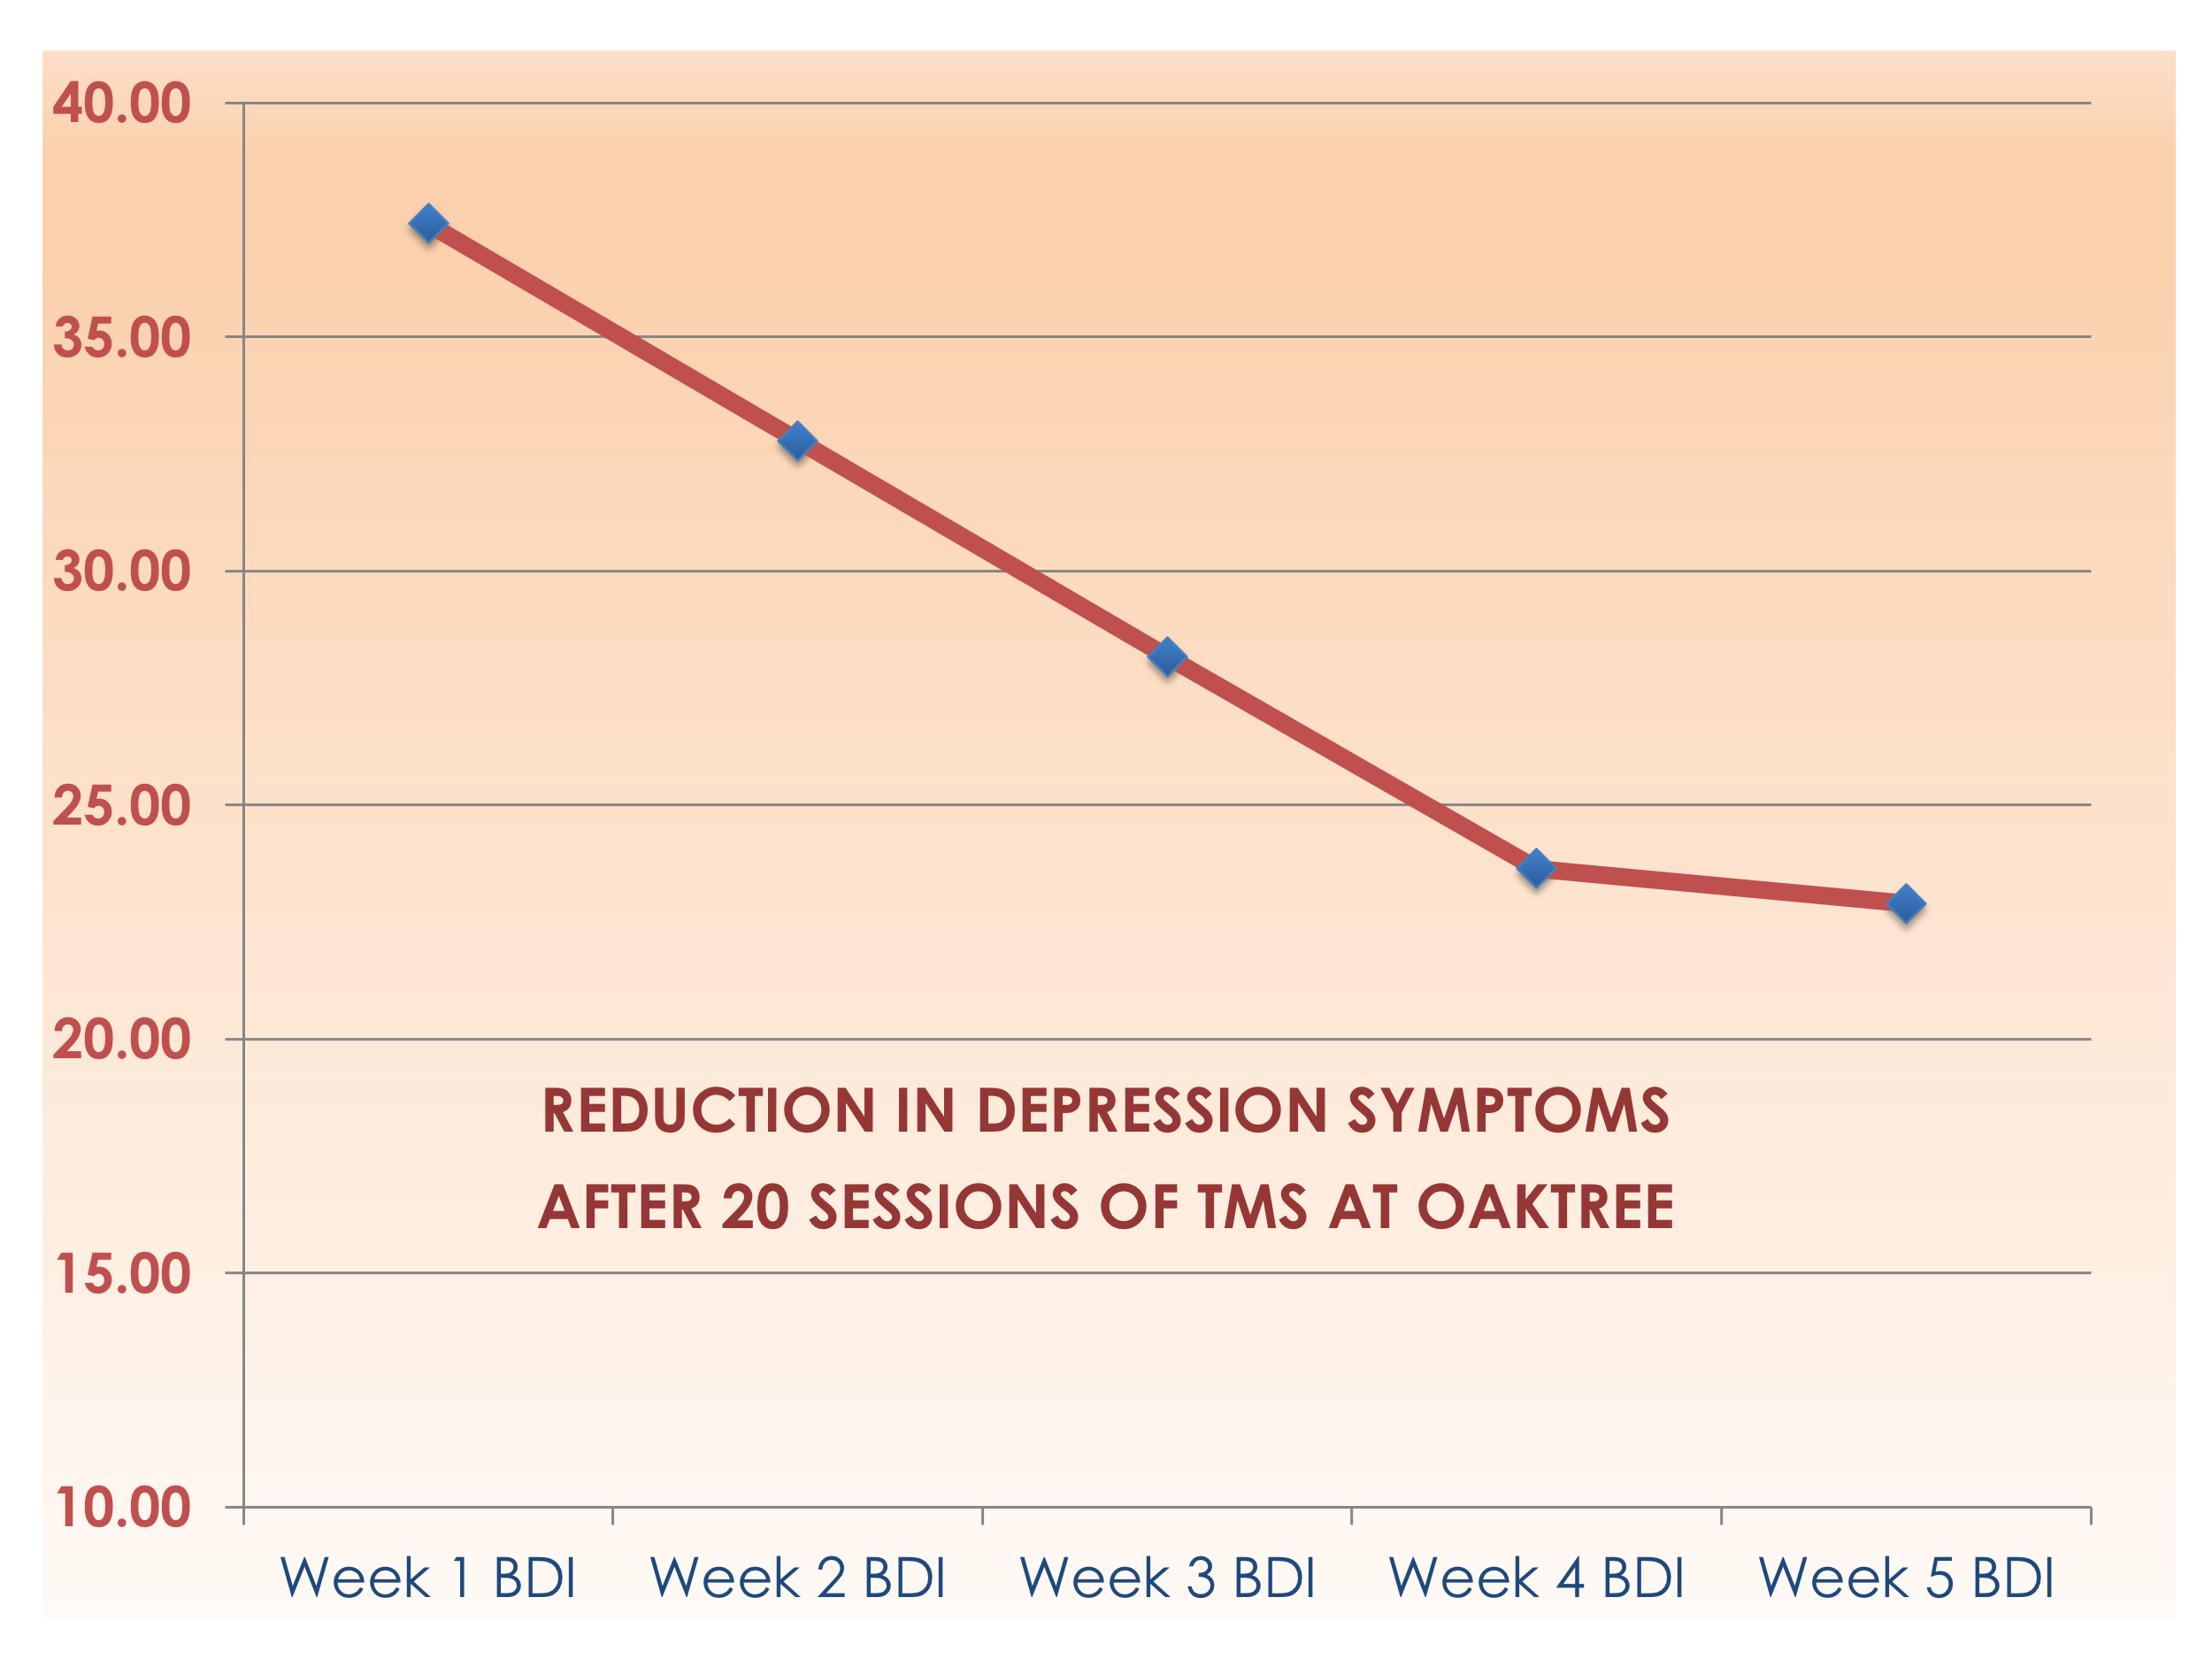 Reduction of Depression Symptoms after TMS at Oaktree